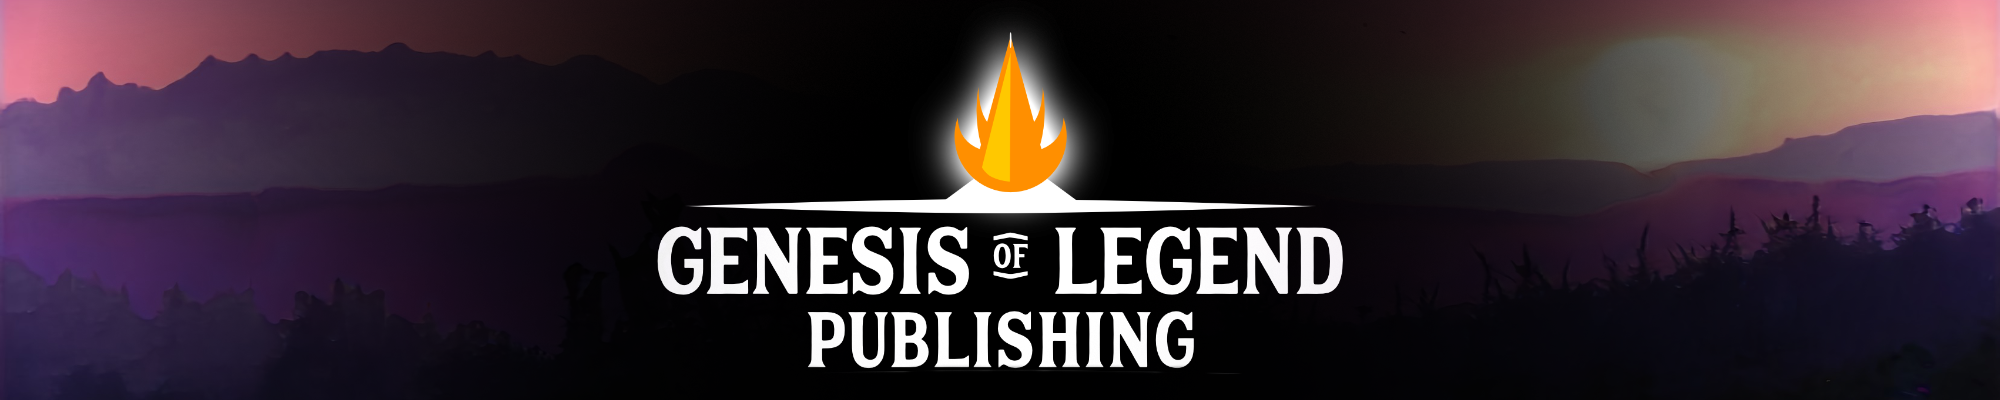 Genesis of Legend Publishing Inc. Logo